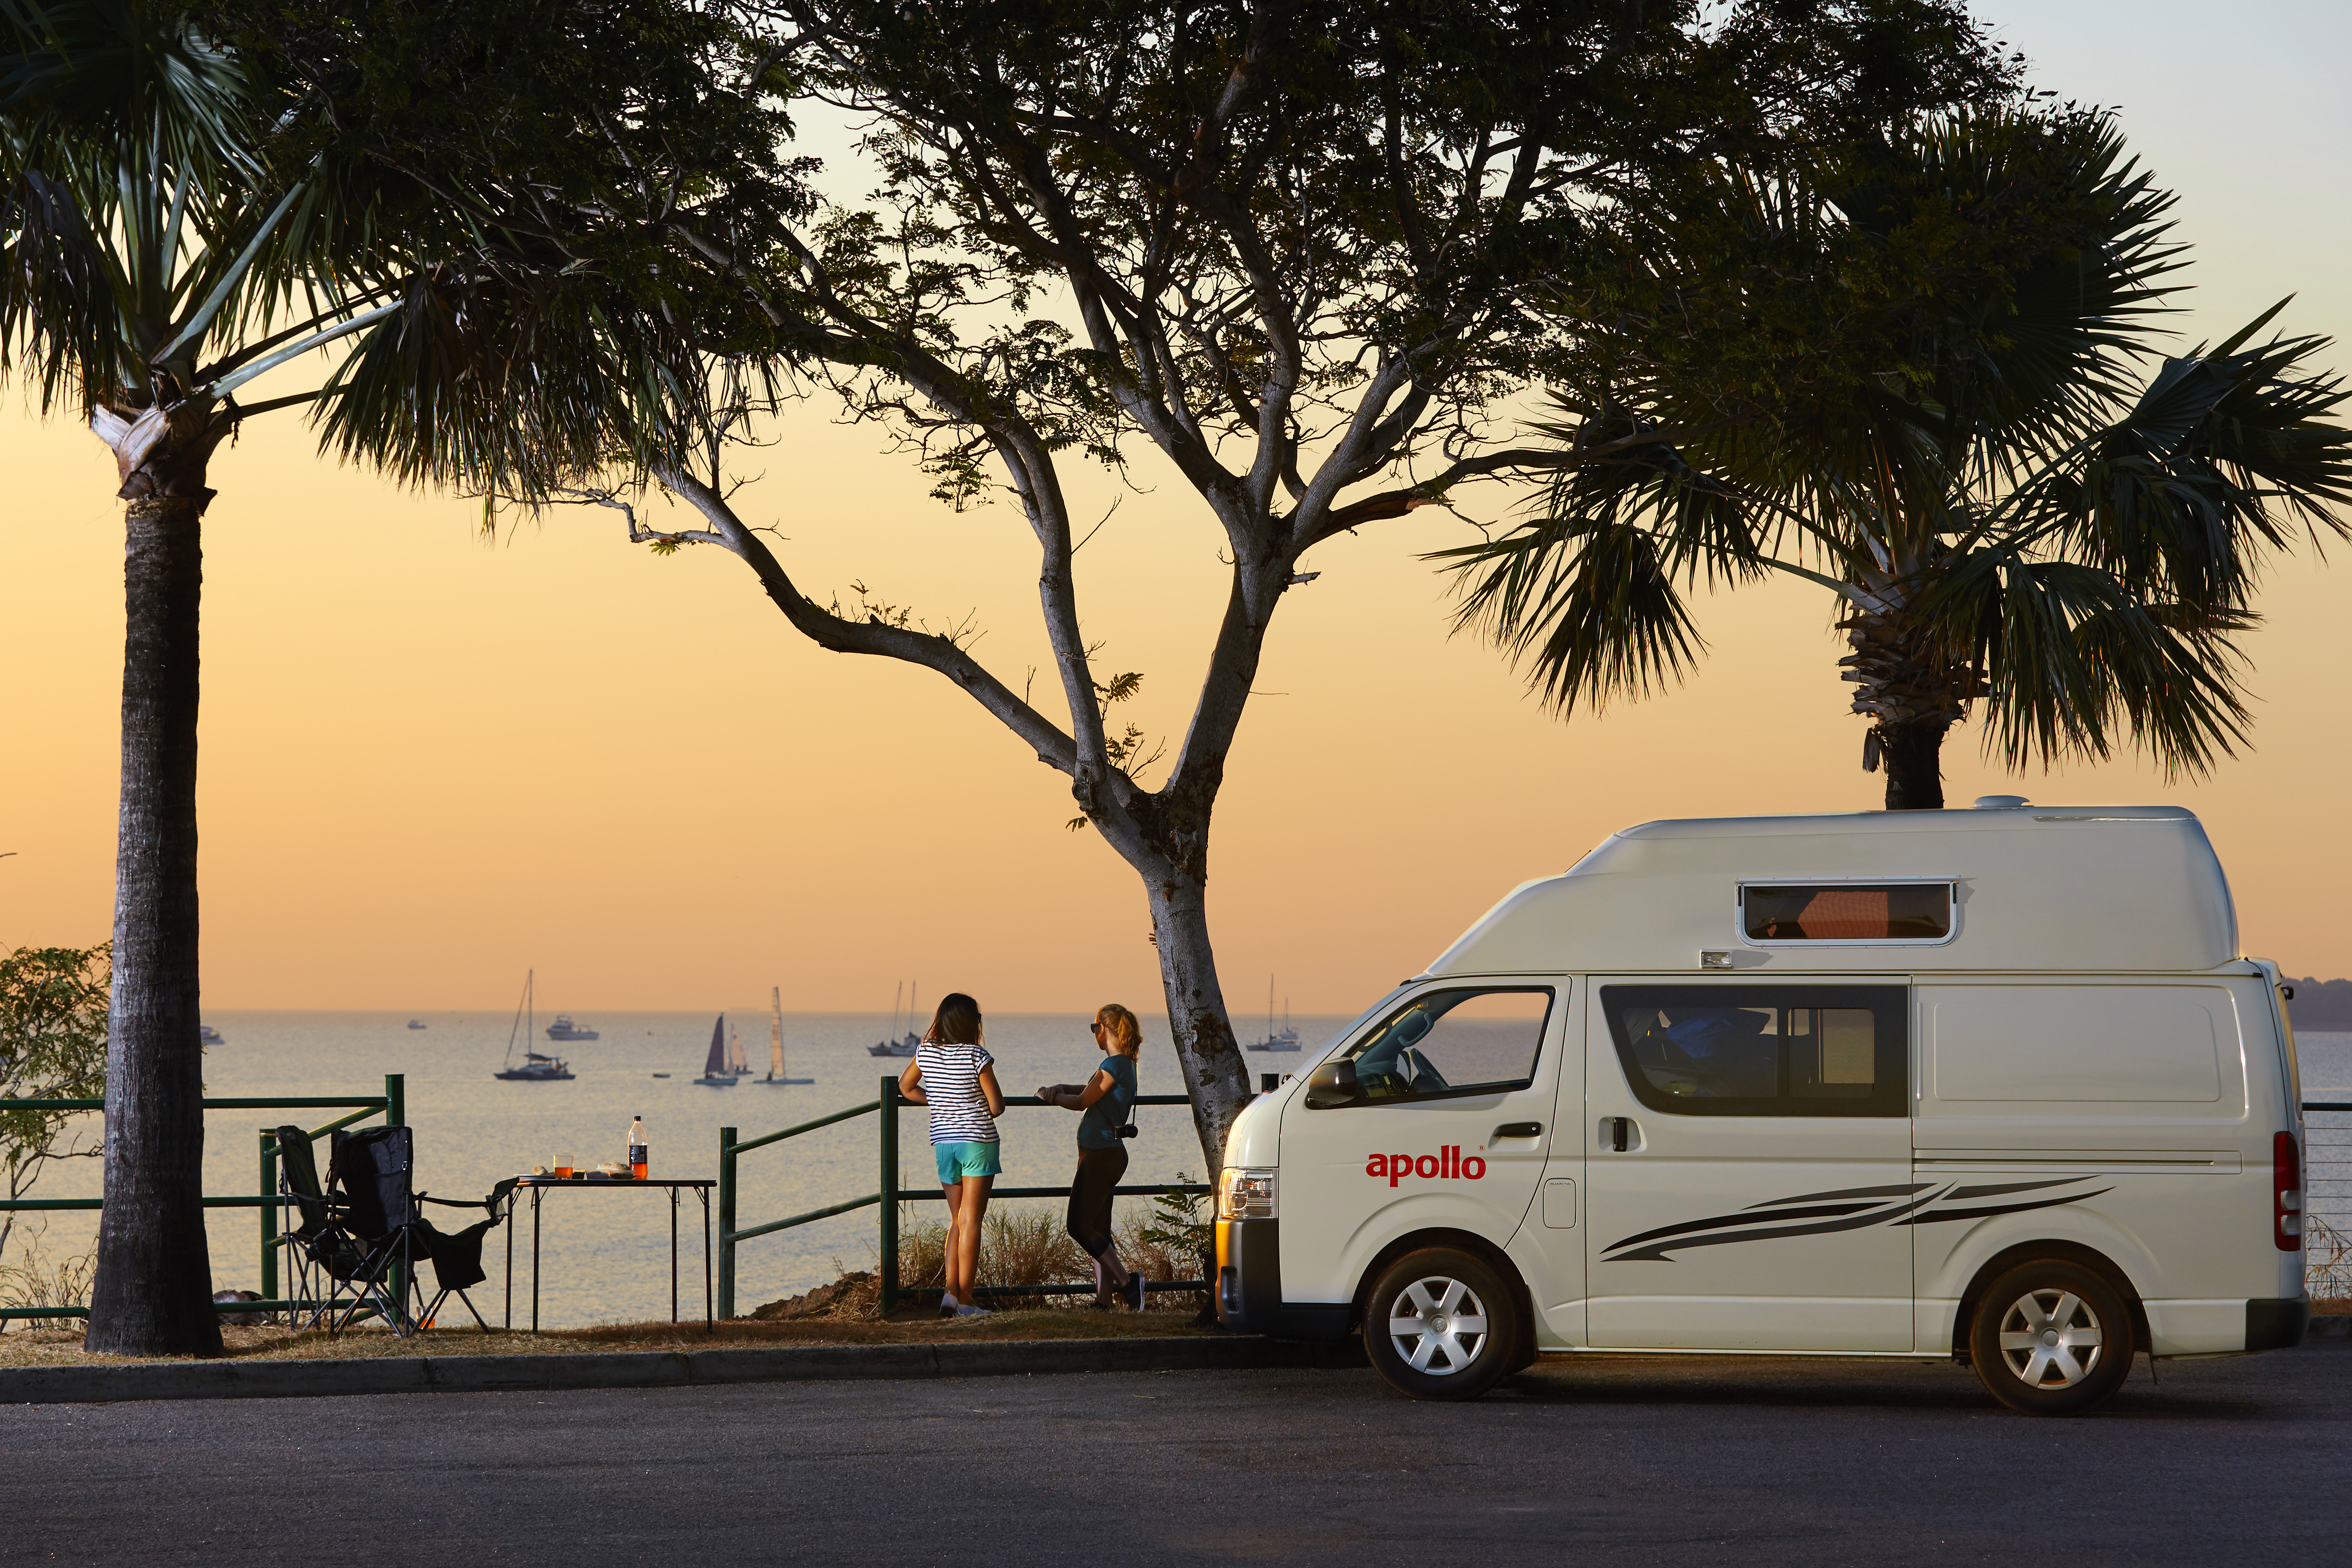 db7748f4b2 Campervan   Motorhome Rental vehicles - Apollo Motorhomes Australia